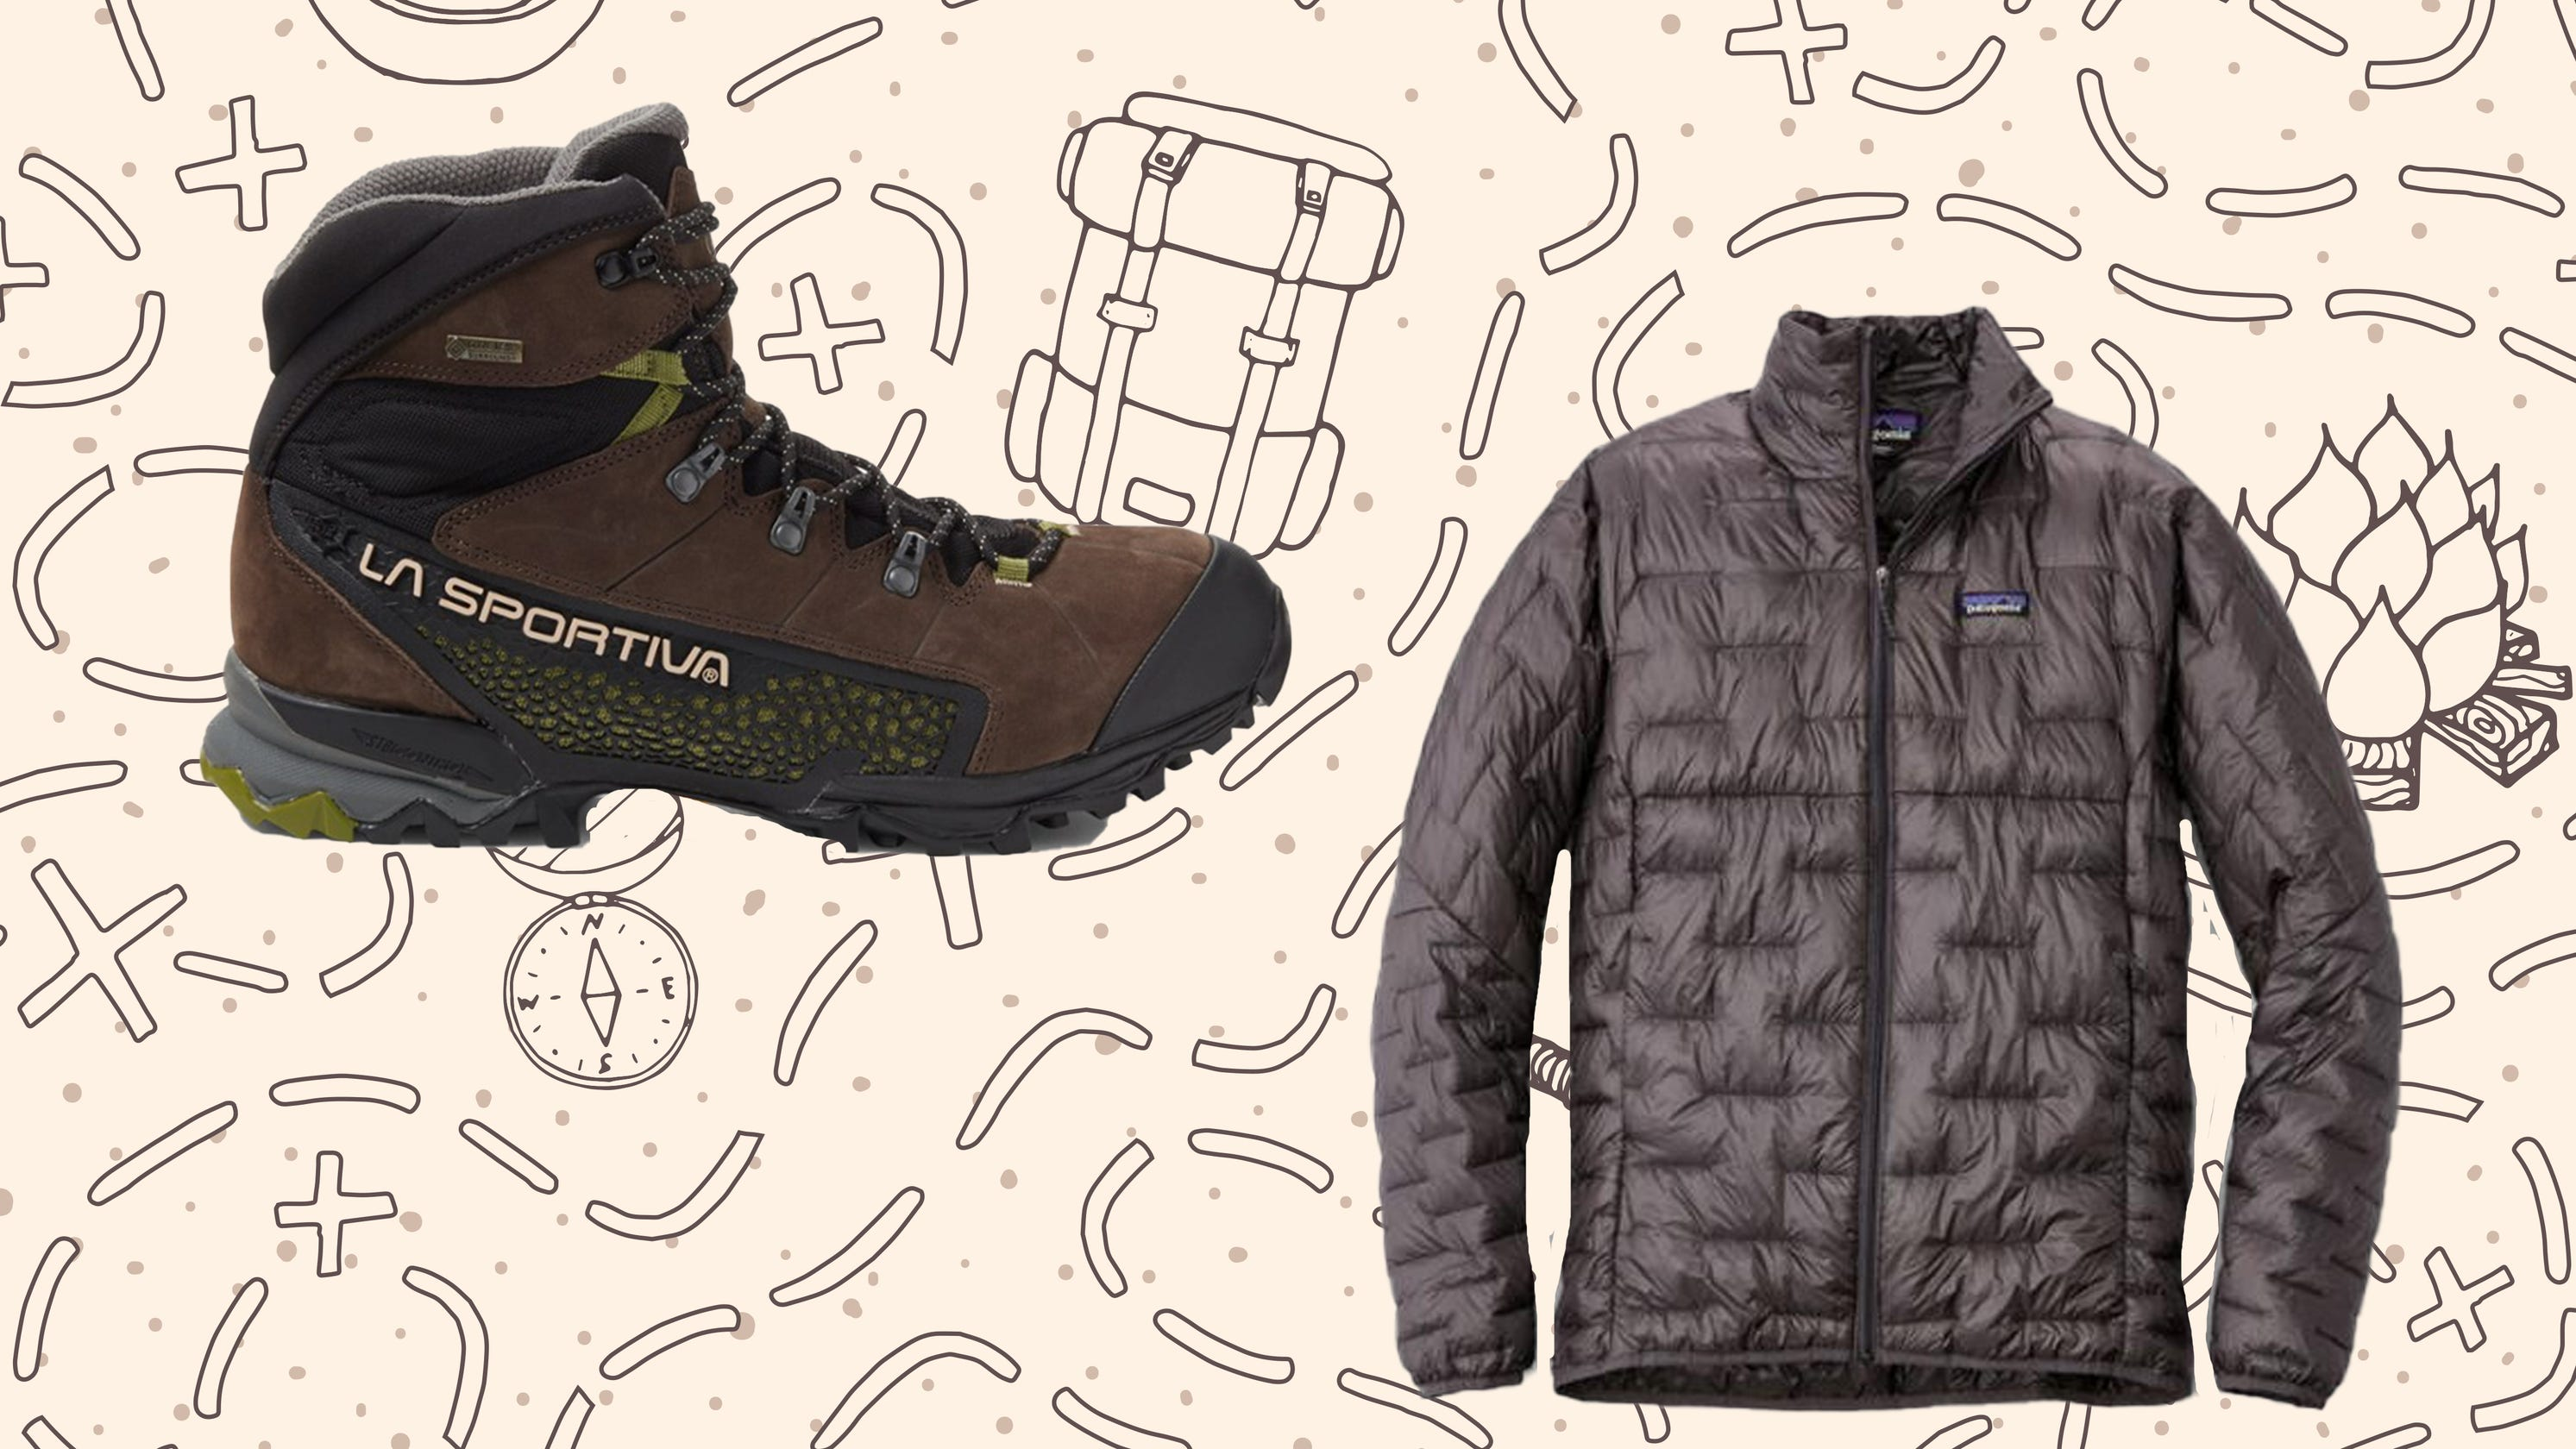 A huge REI sale just launched on outdoor gear and apparel—here are the best deals